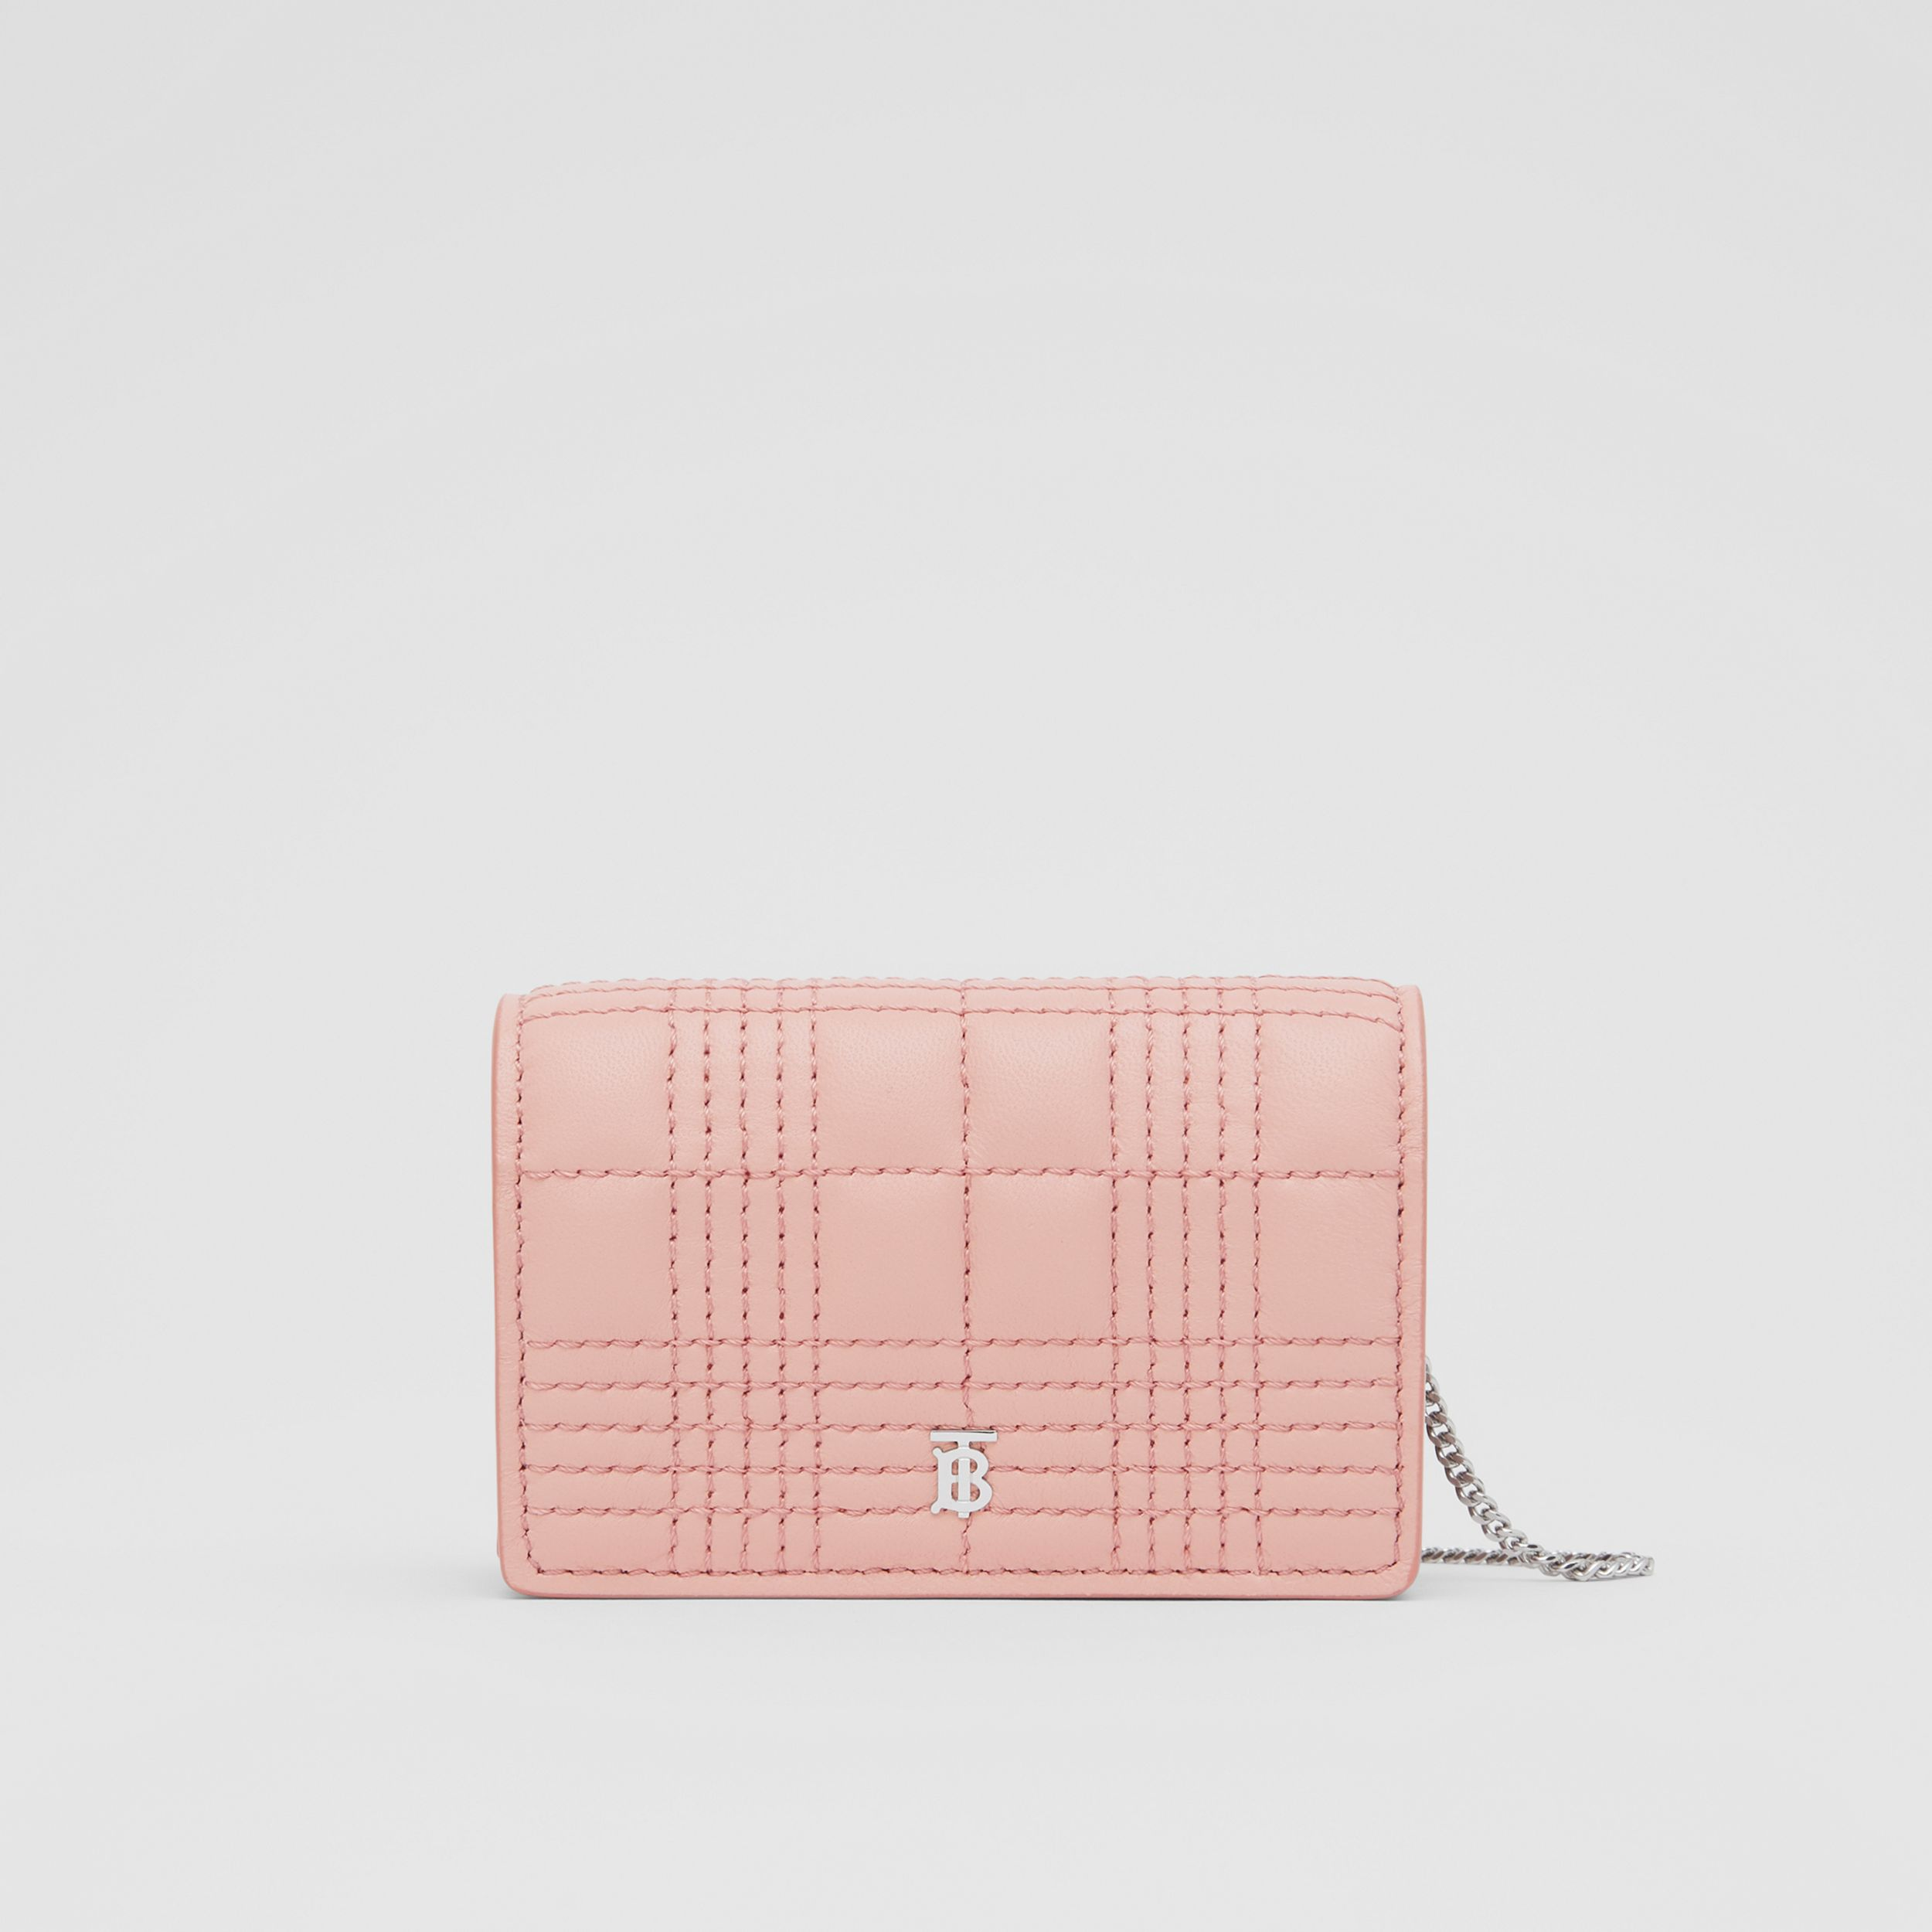 Quilted Lambskin Card Case with Detachable Strap in Blush Pink | Burberry - 1